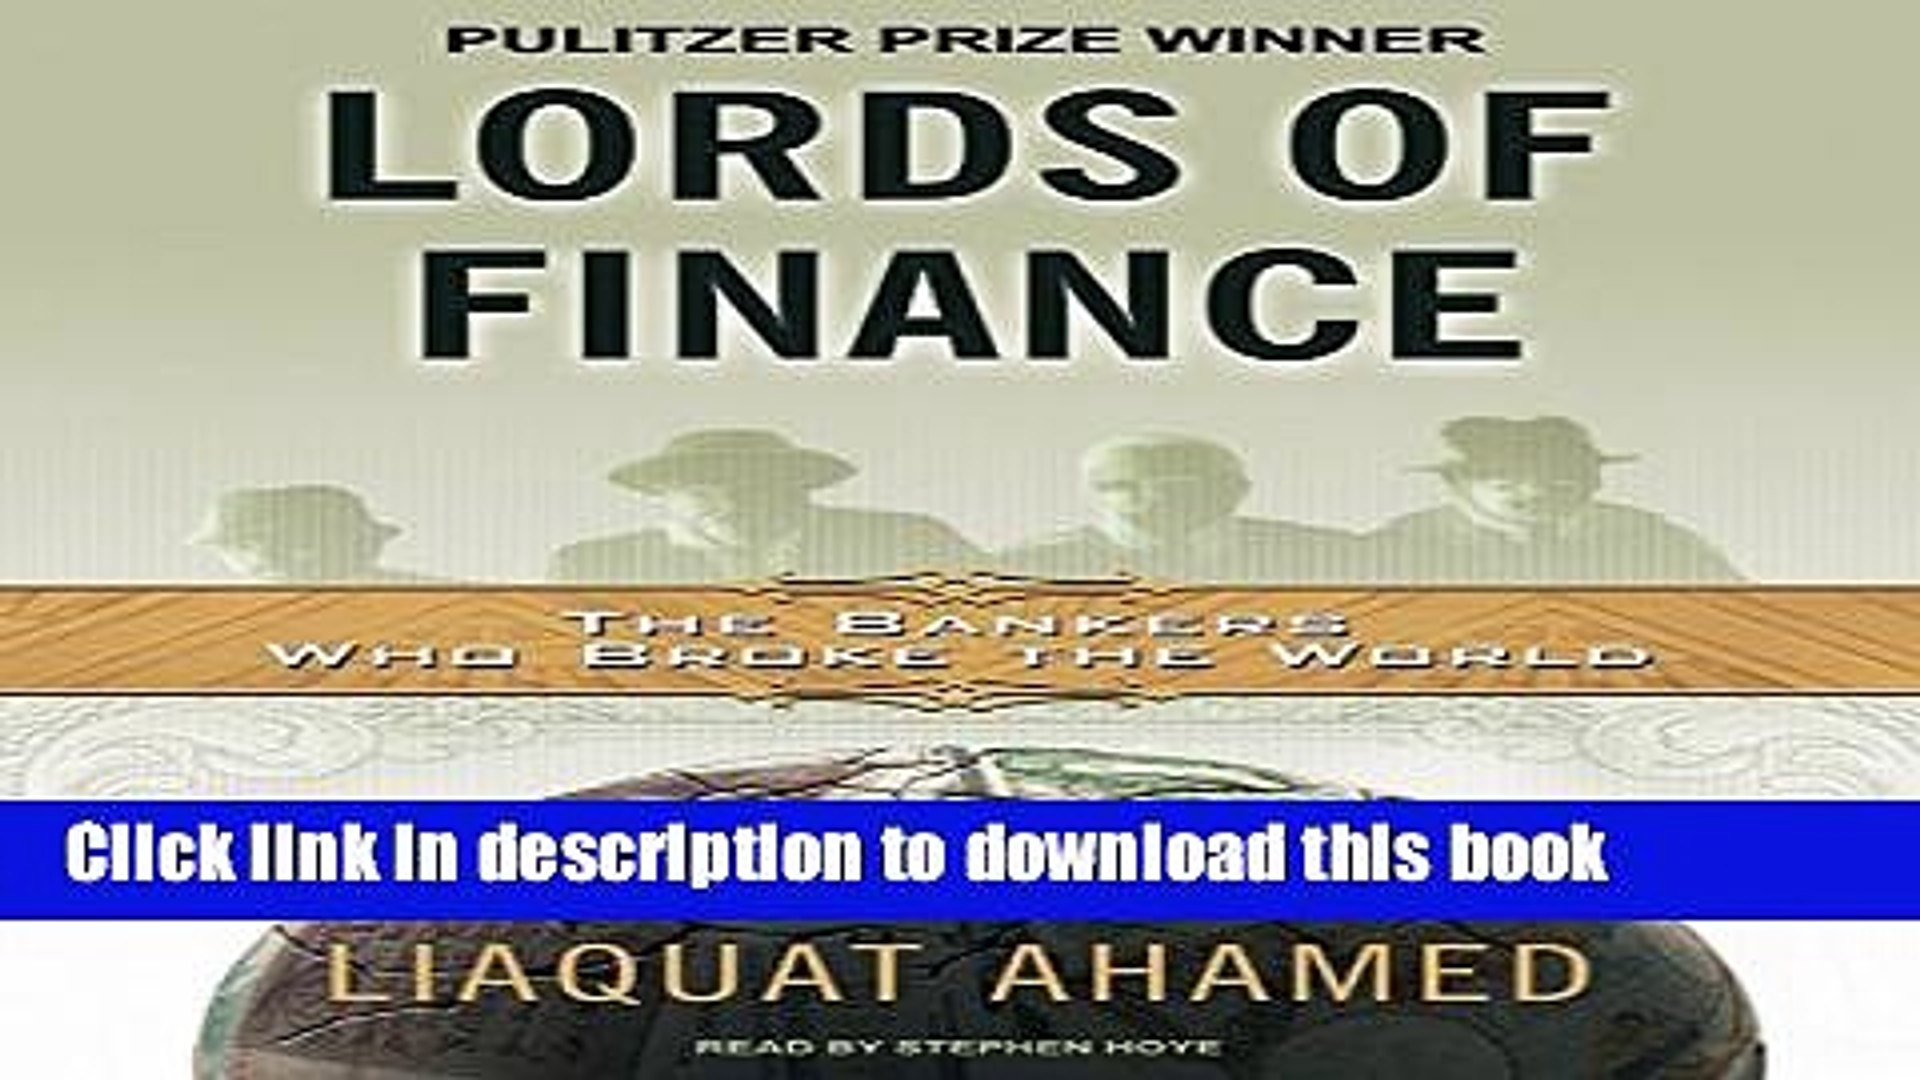 Download Books Lords of Finance: The Bankers Who Broke the World [MP3 AUDIO] [UNABRIDGED] (MP3 CD)